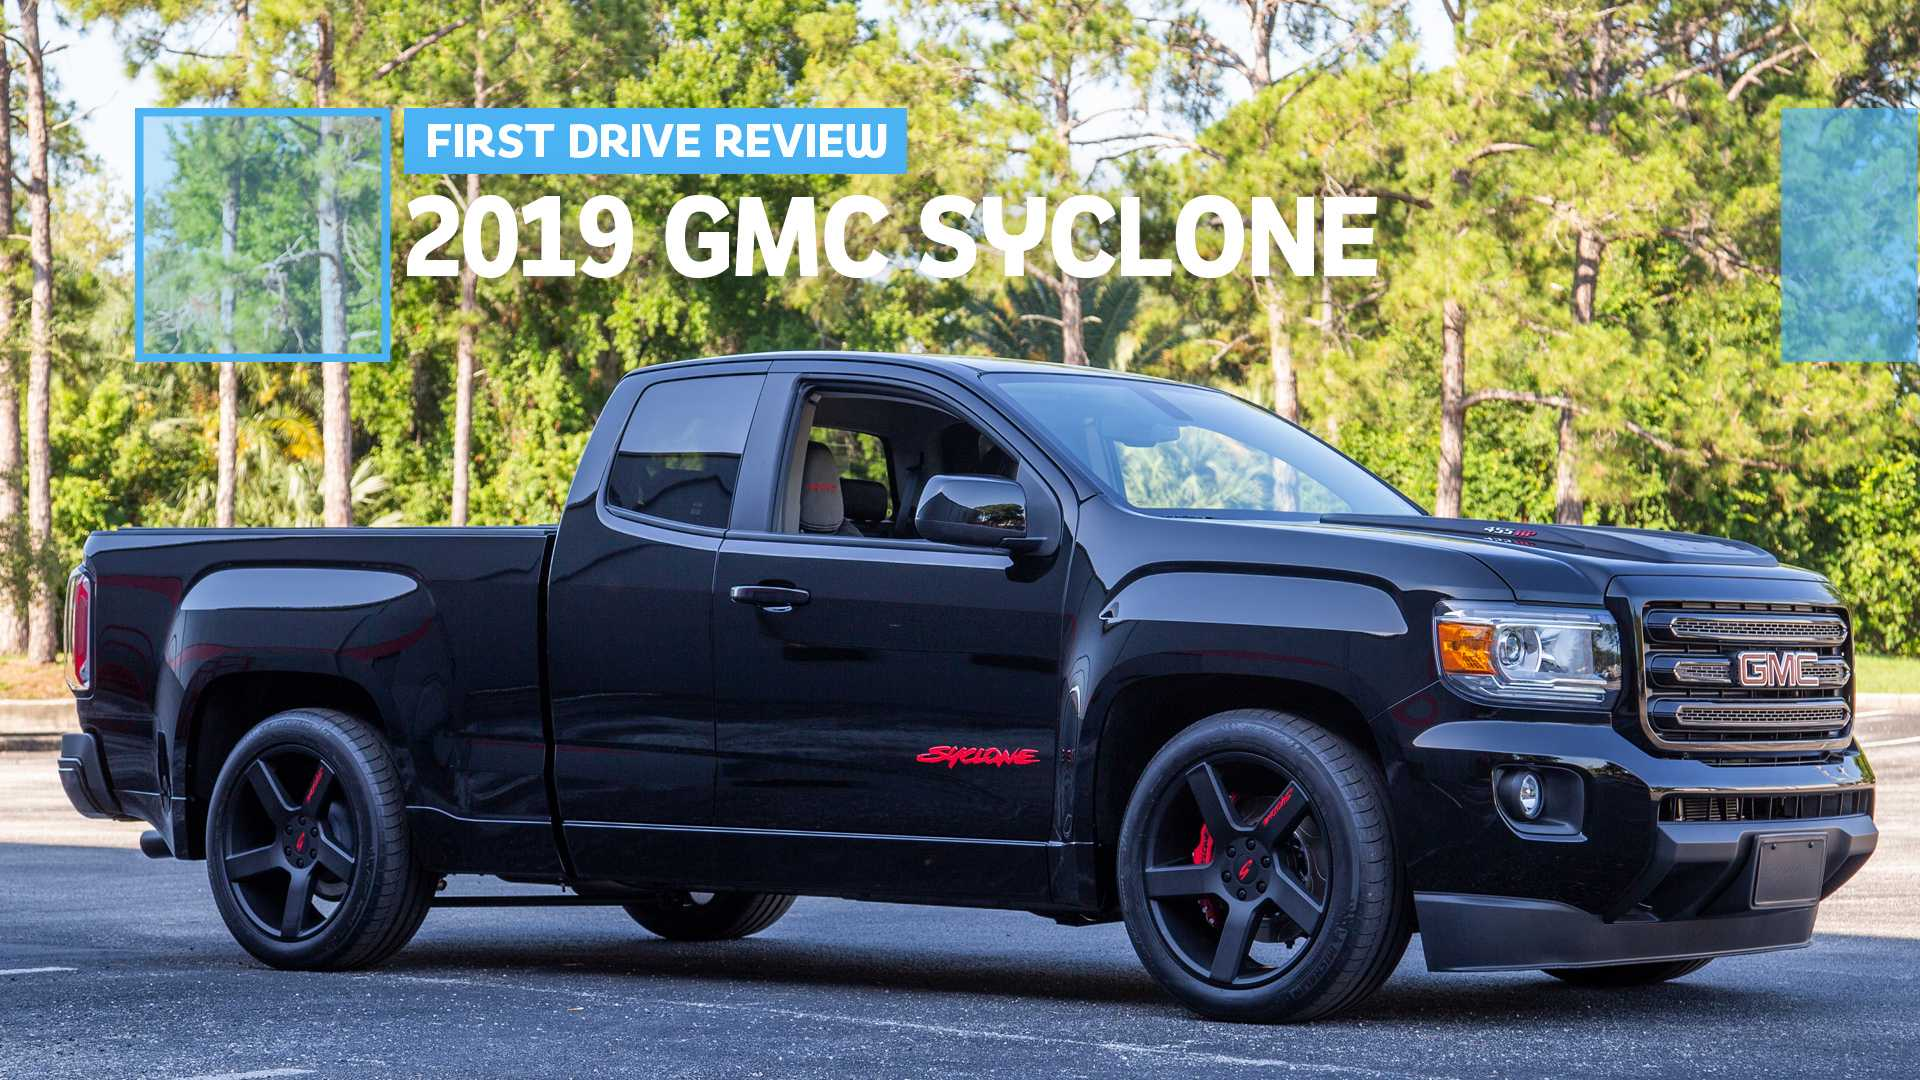 49 All New 2020 Gmc Syclone Images